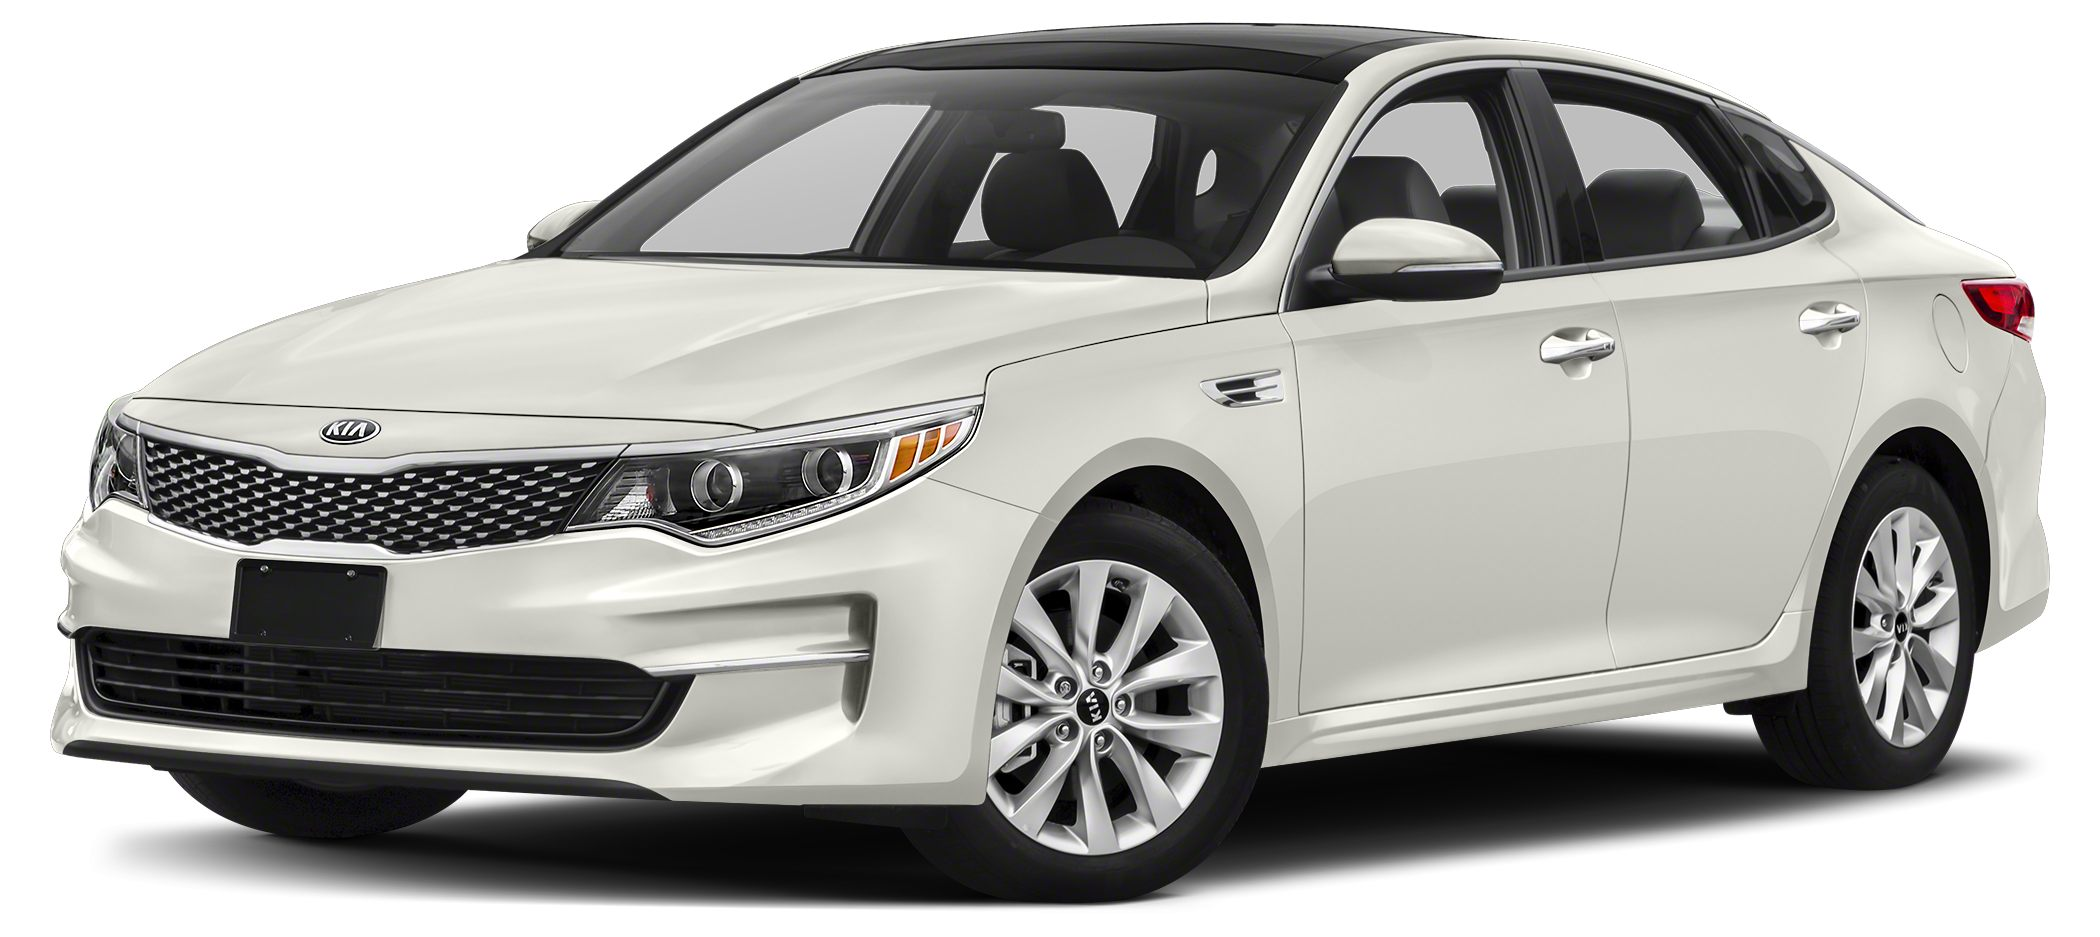 2016 Kia Optima EX Miles 21786Color White Stock K17528A VIN 5XXGU4L34GG086406